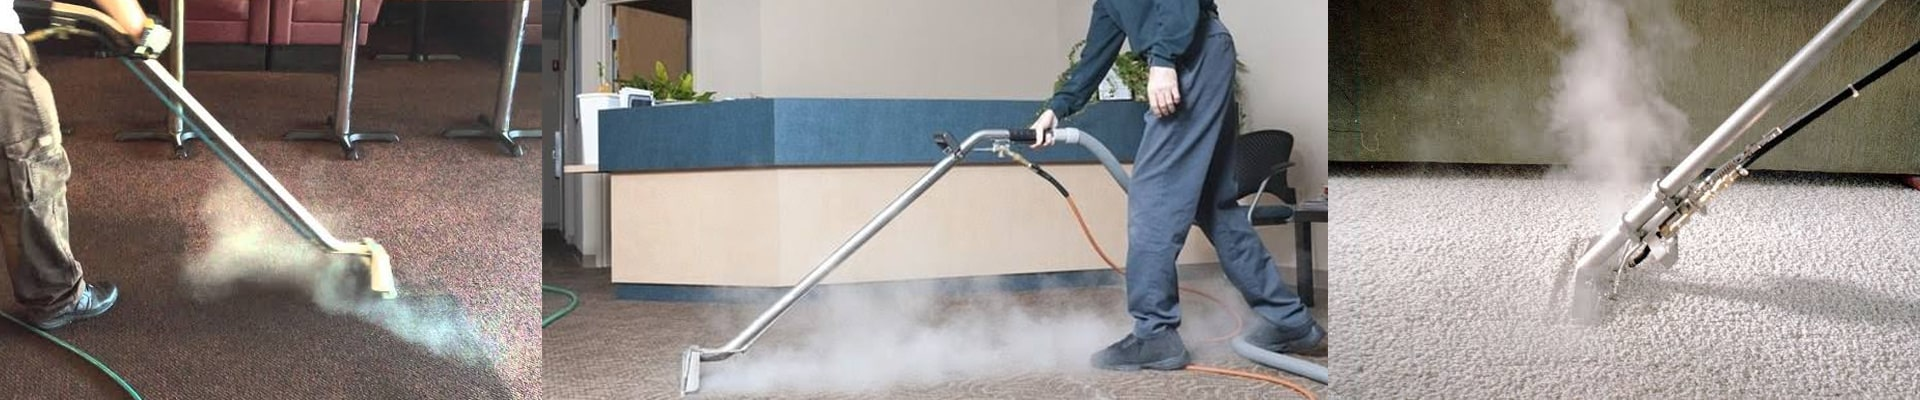 Carpet Steam-Cleaning